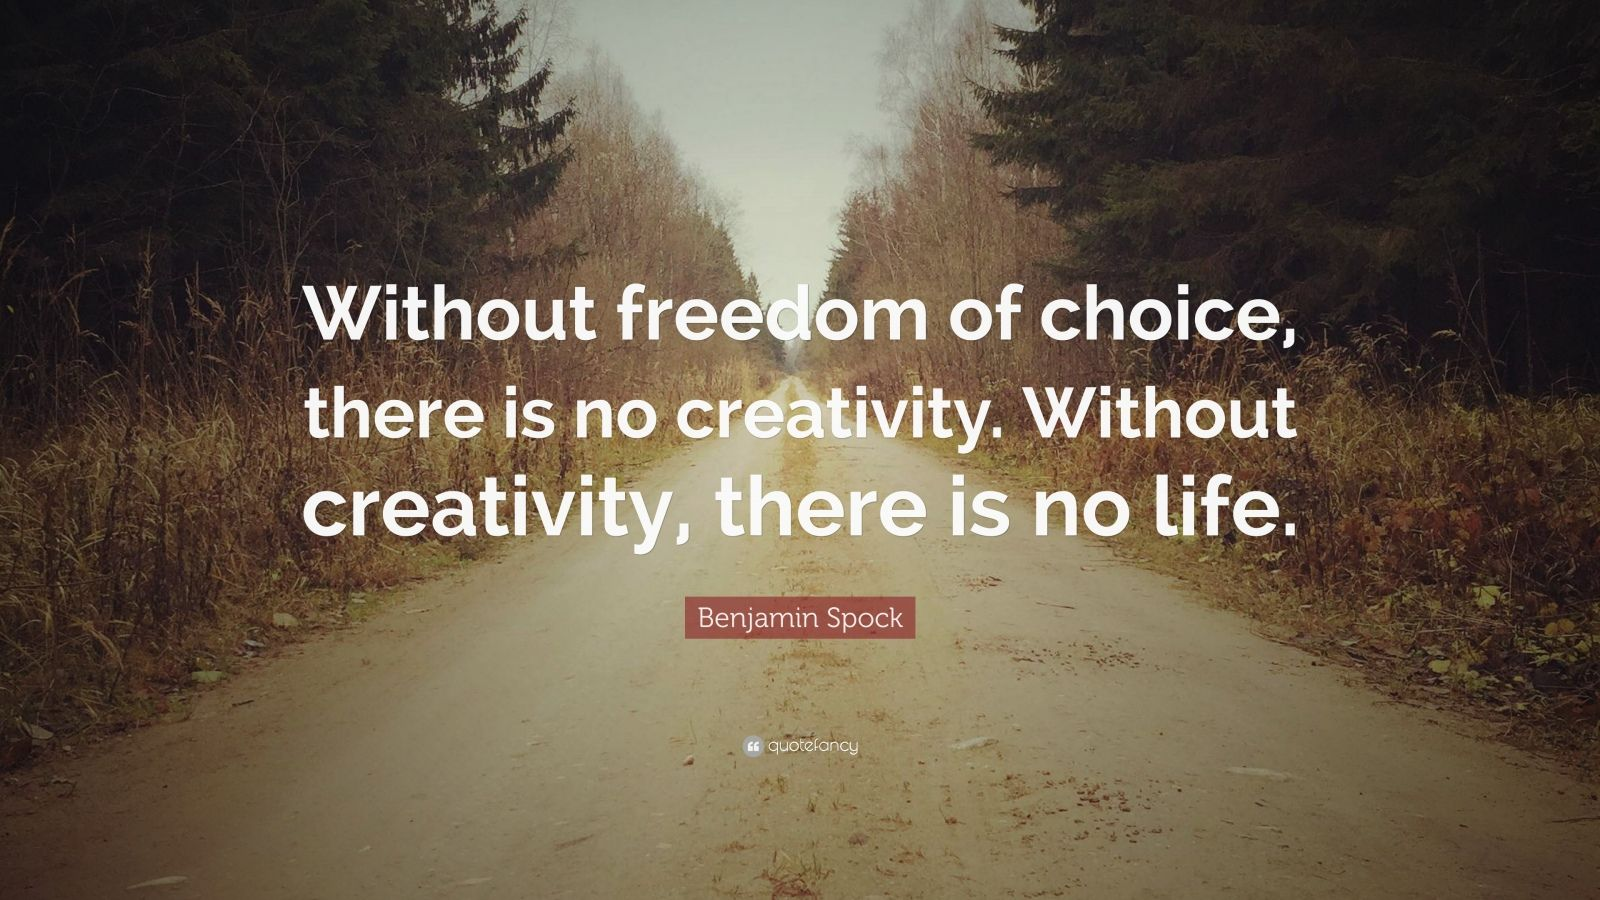 Life Without Freedom Quotes: Benjamin Spock Quotes (46 Wallpapers)